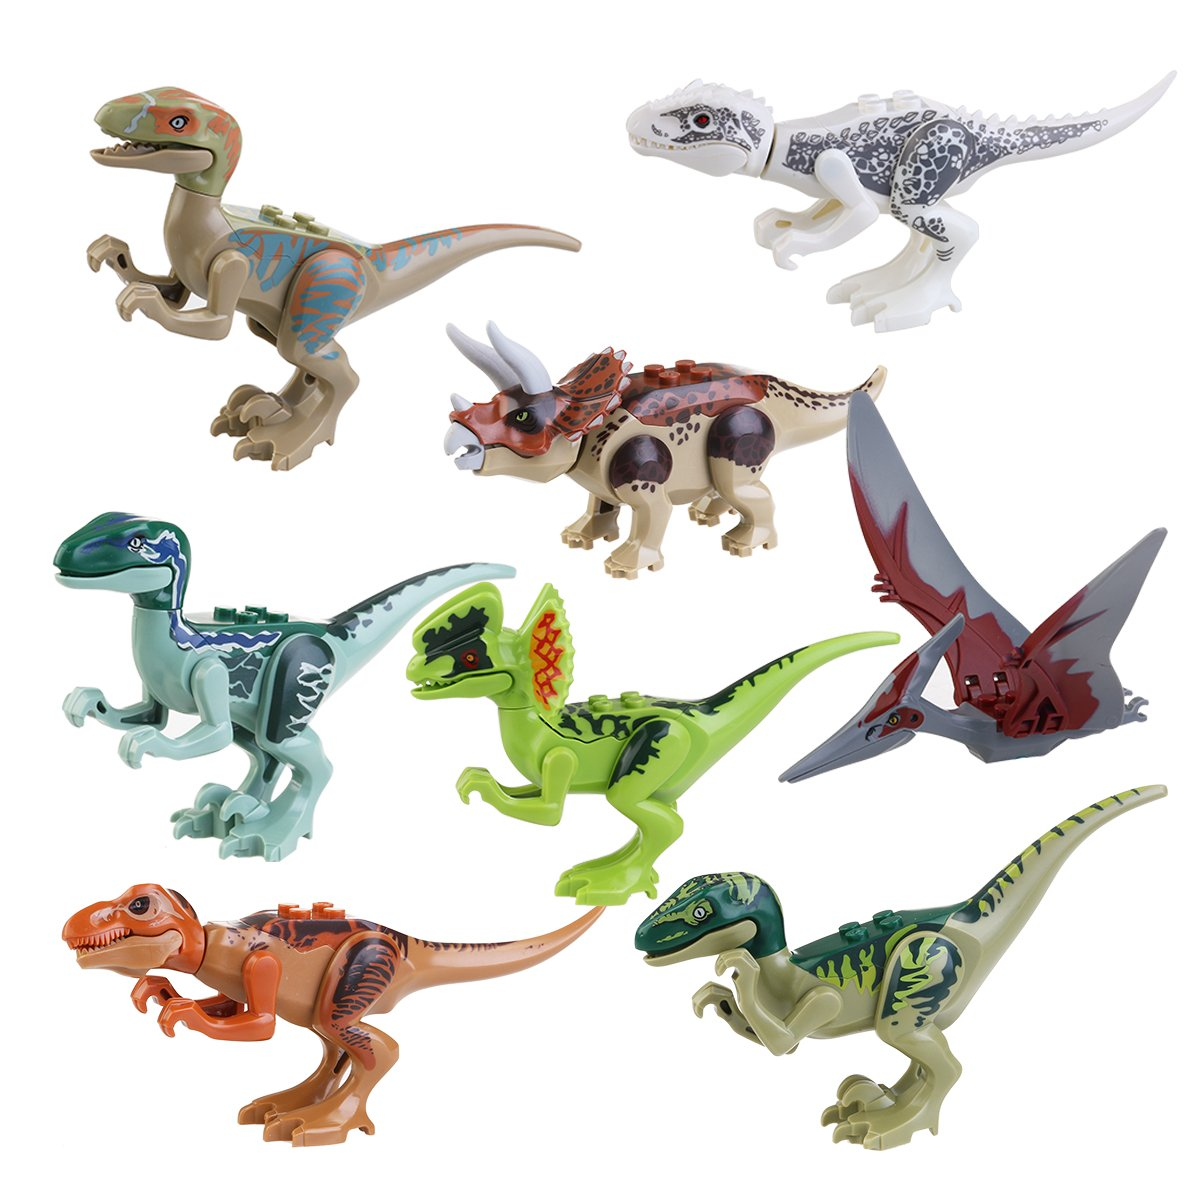 BESTOYARD Dinosaur Figure Building Blocks Mini Dinosaur Toys Dinosaur Blocks Playset 8 pcs 8PACK